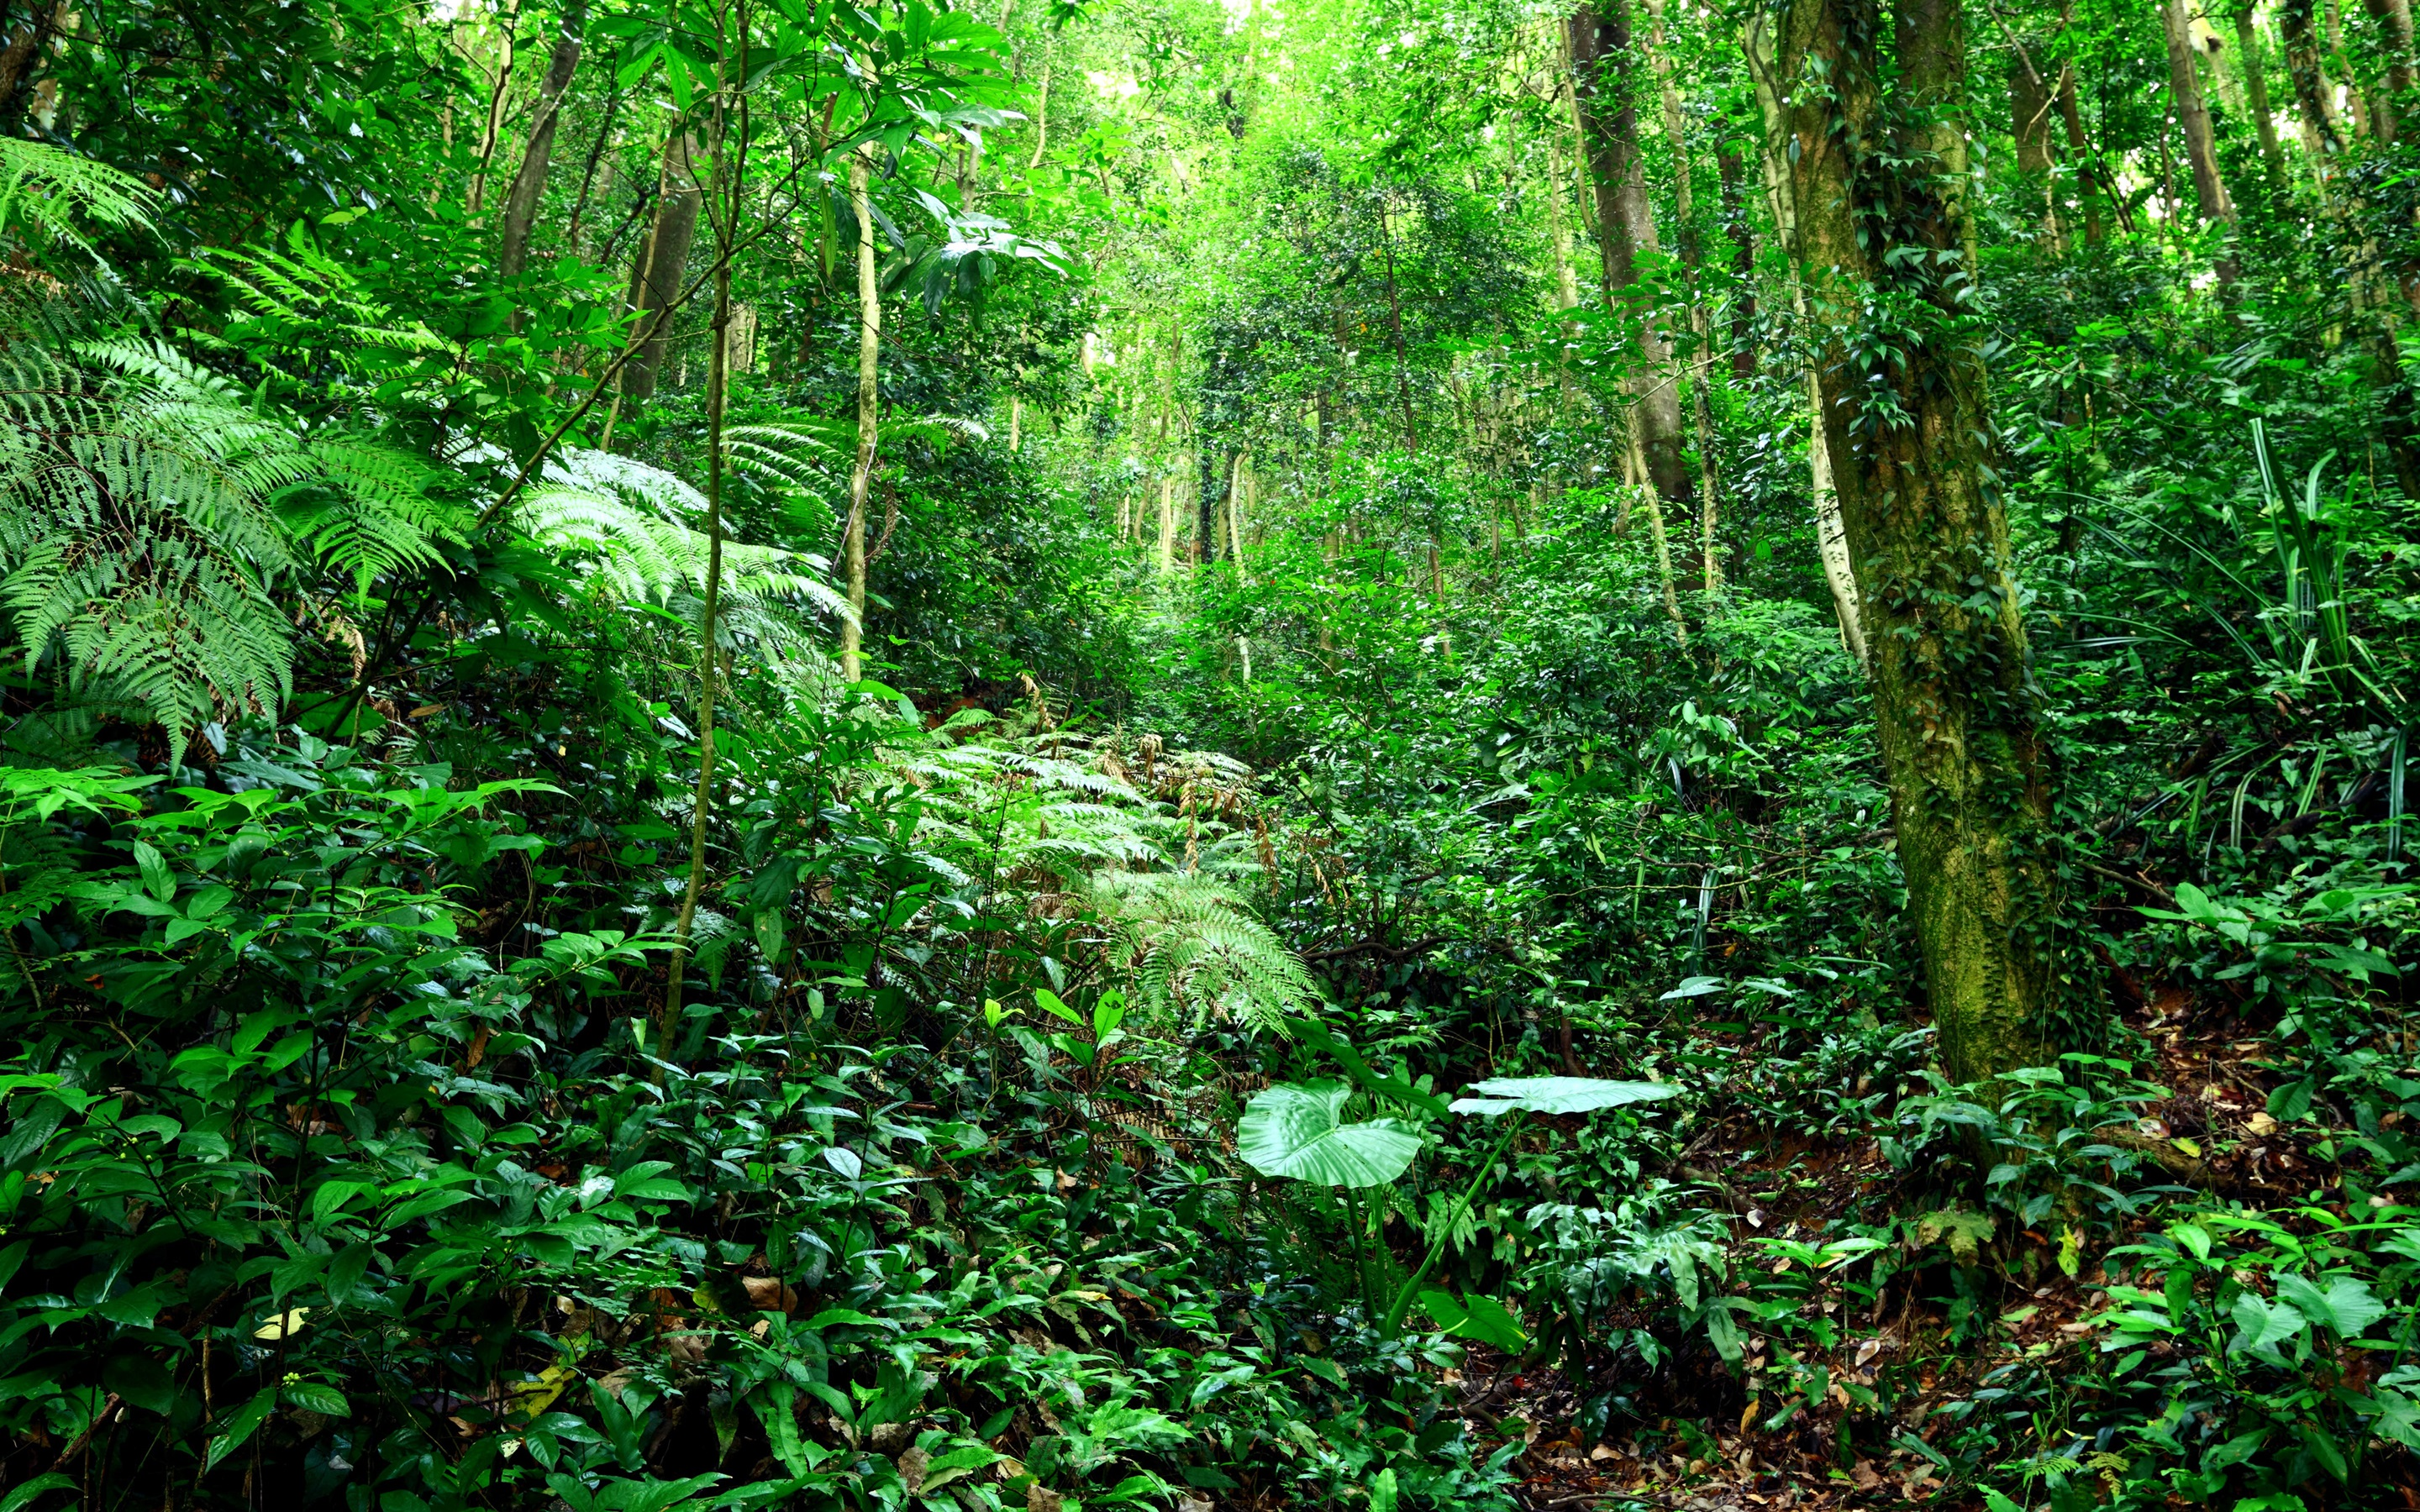 Wallpaper Tropical Forest Jungle Bushes Grass Trees